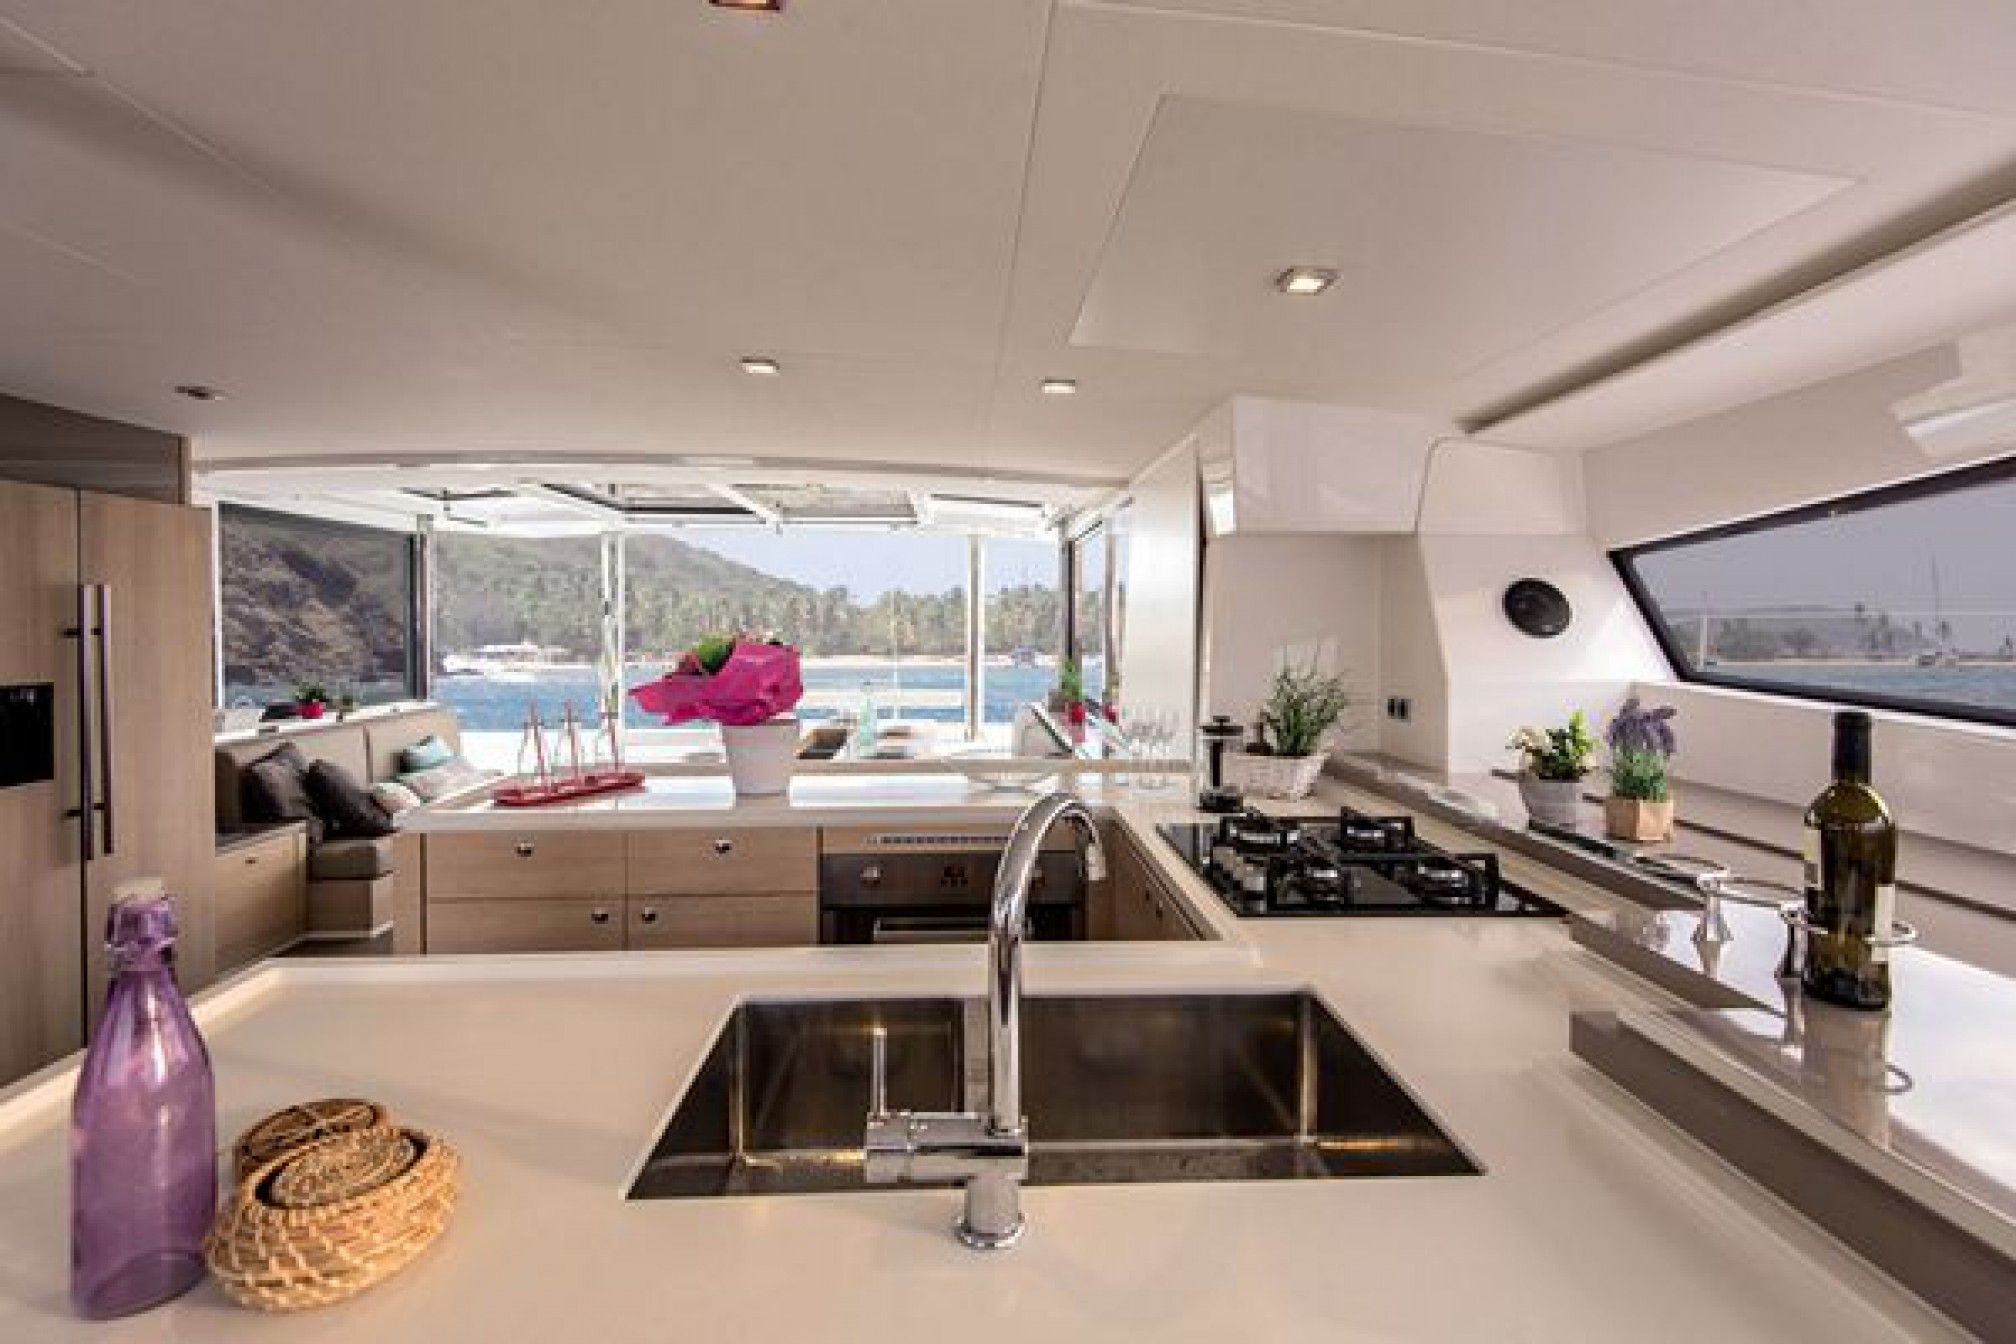 Rental catamaran Bali 5.4 galley